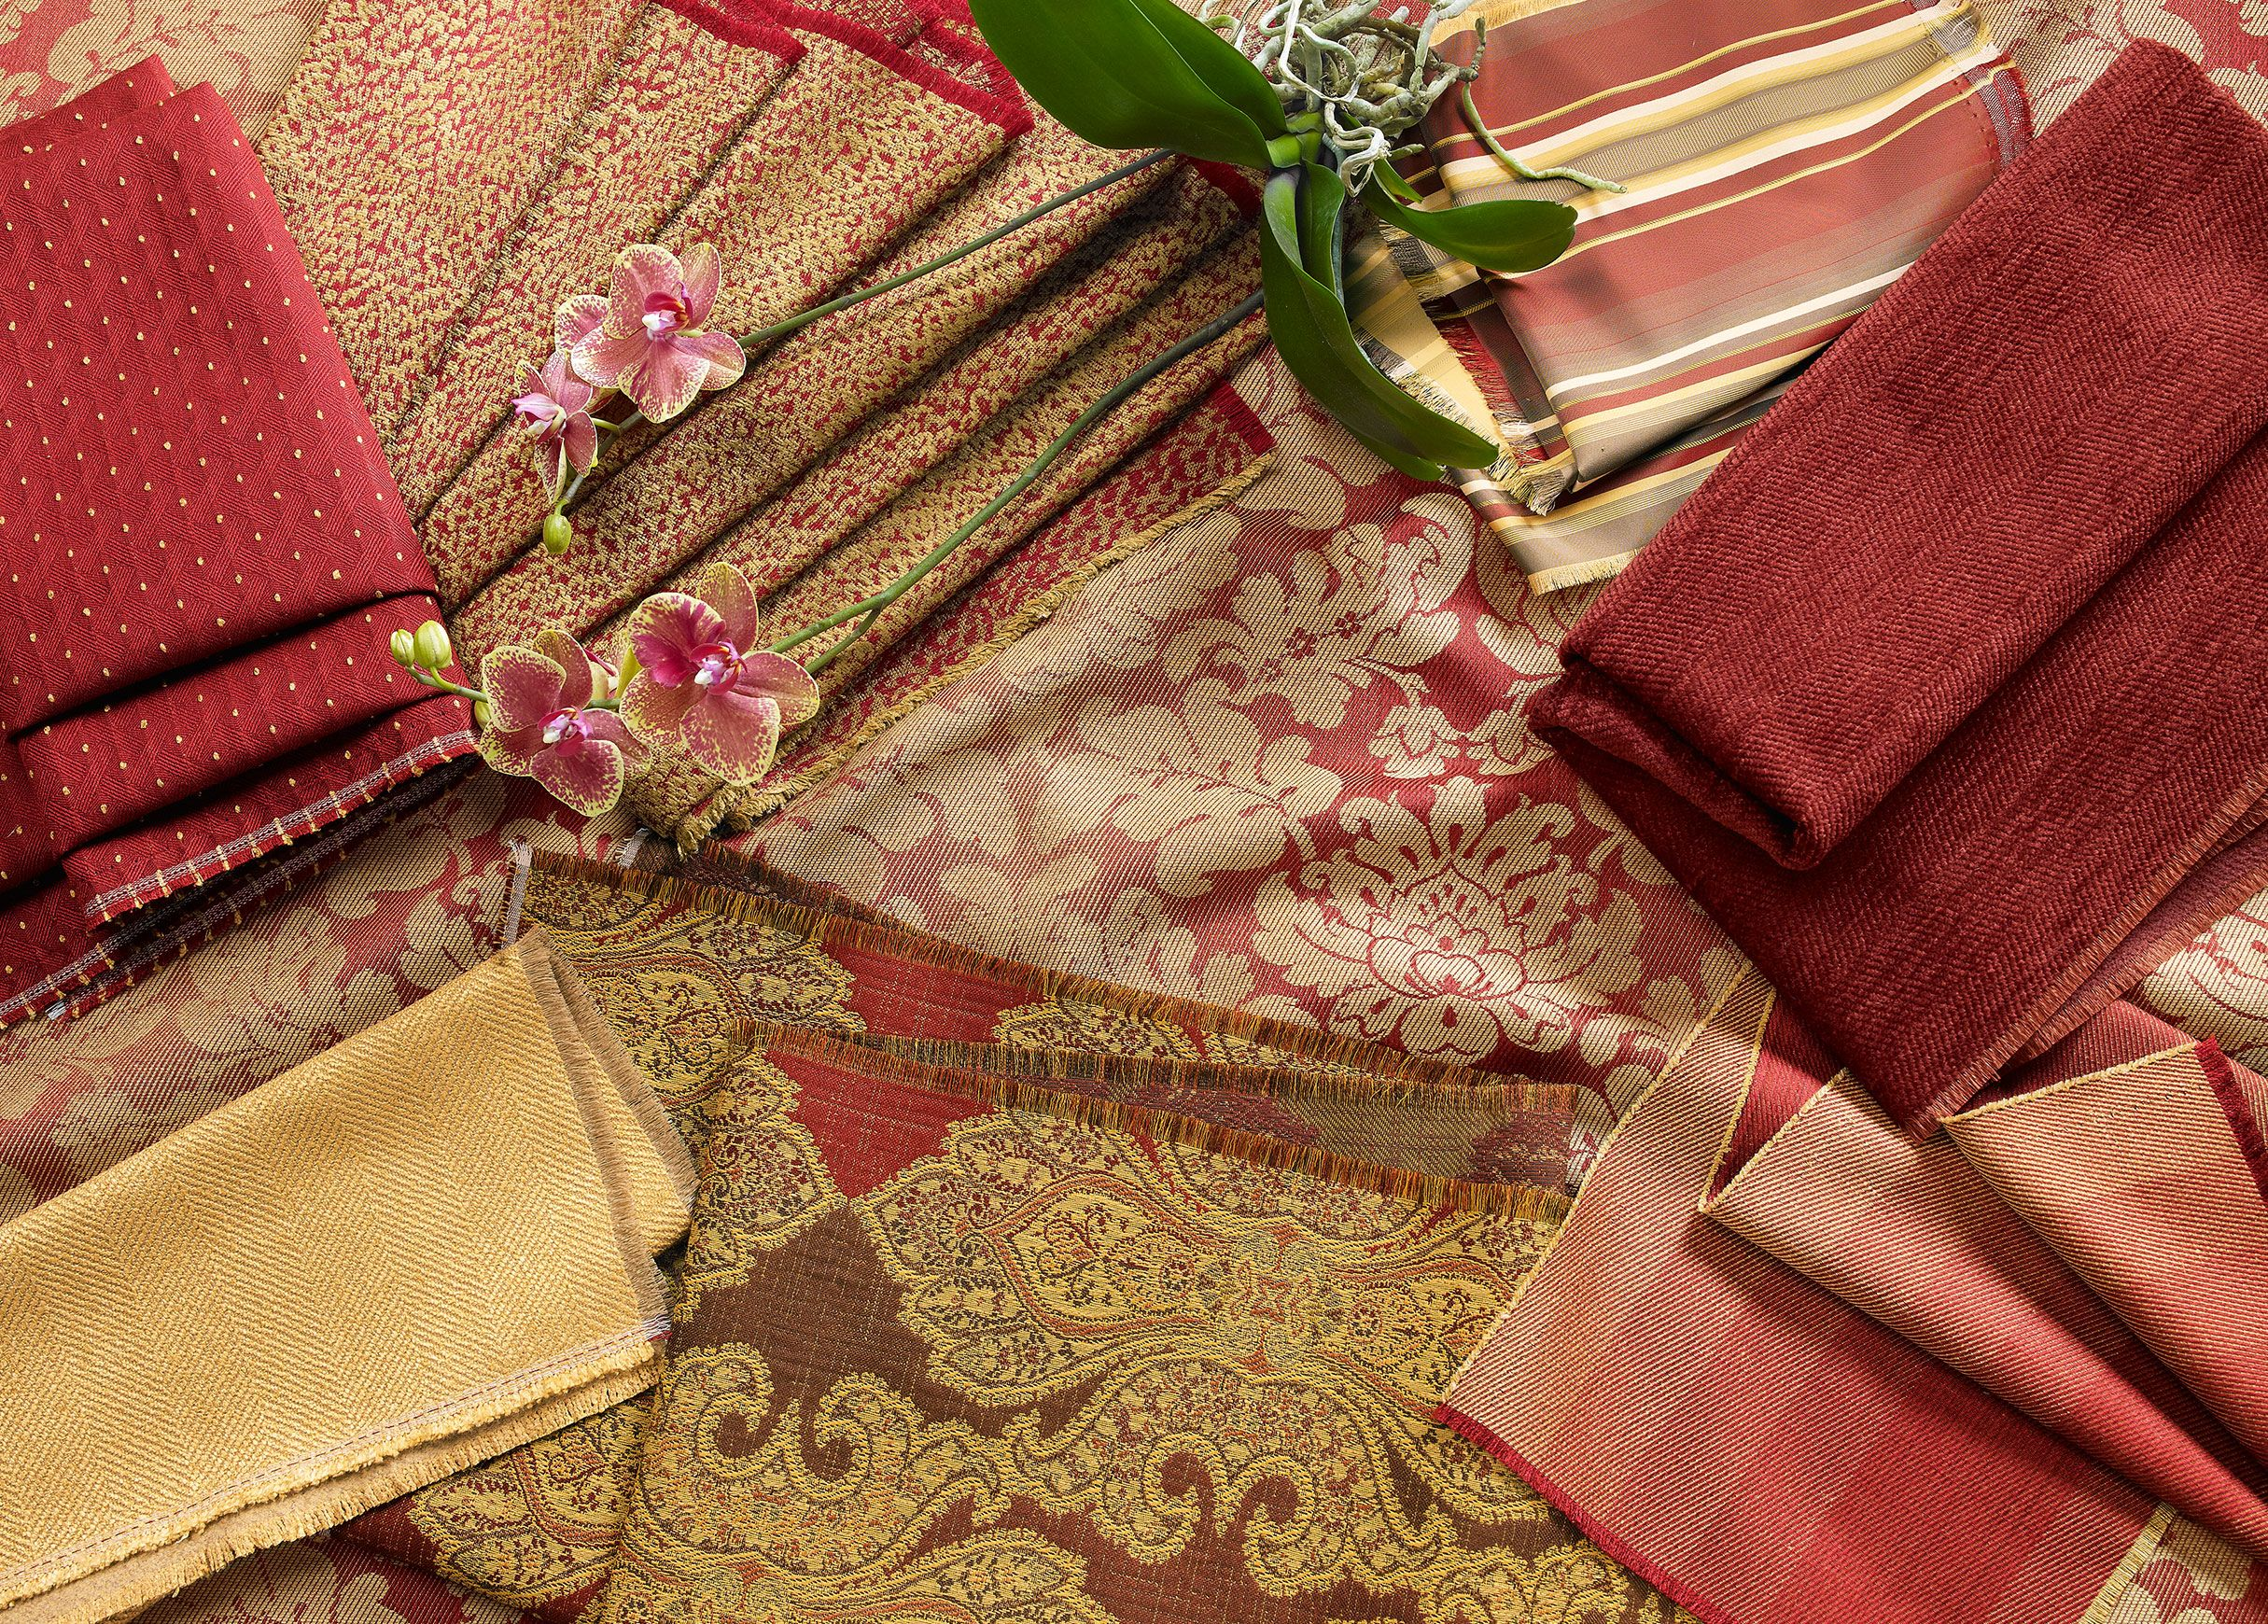 Spice Market Fabric Collection Fabric collection, Fabric